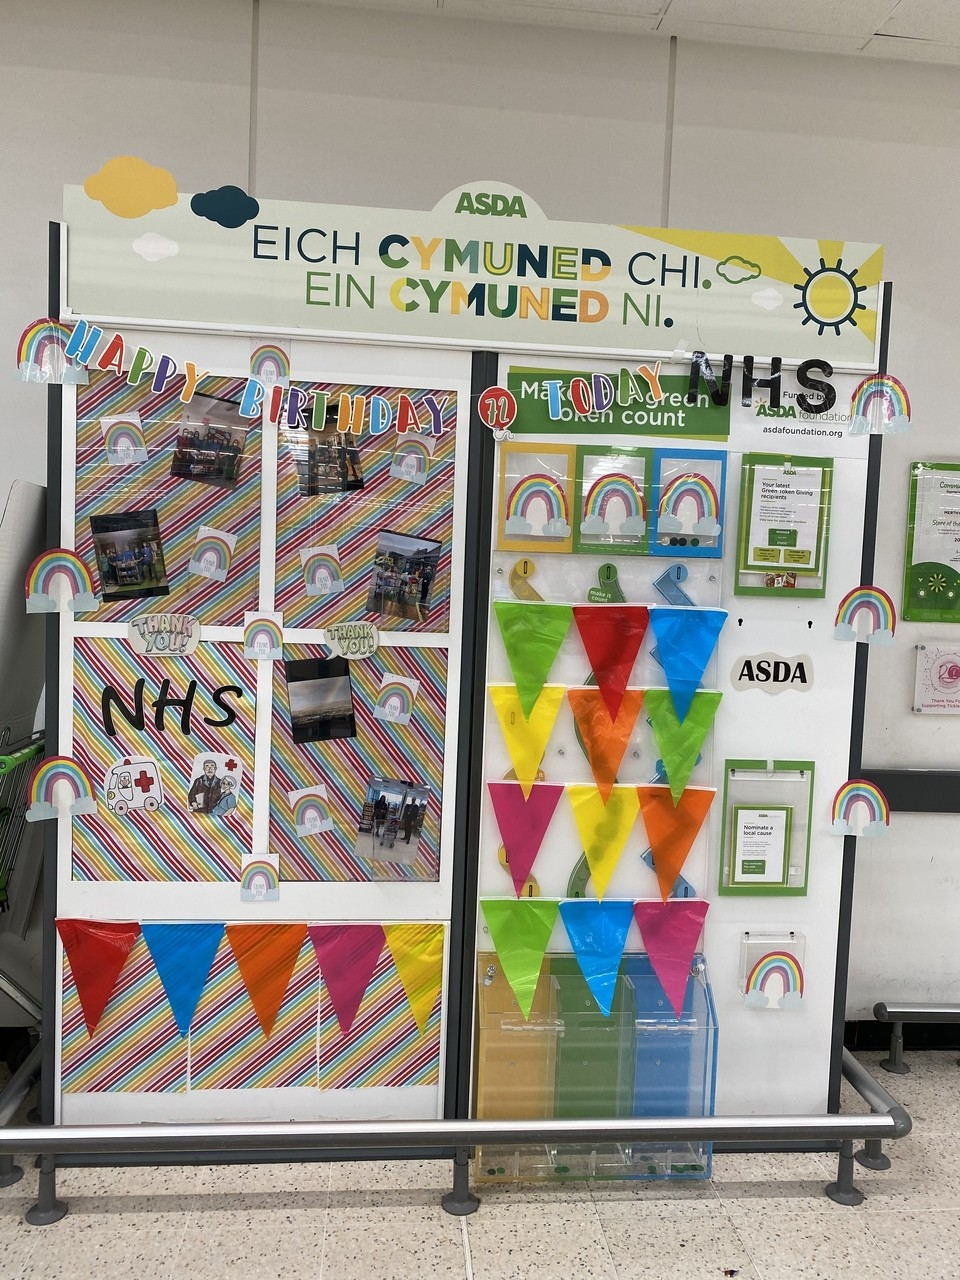 Happy 72nd birthday NHS  | Asda Merthyr Tydfil